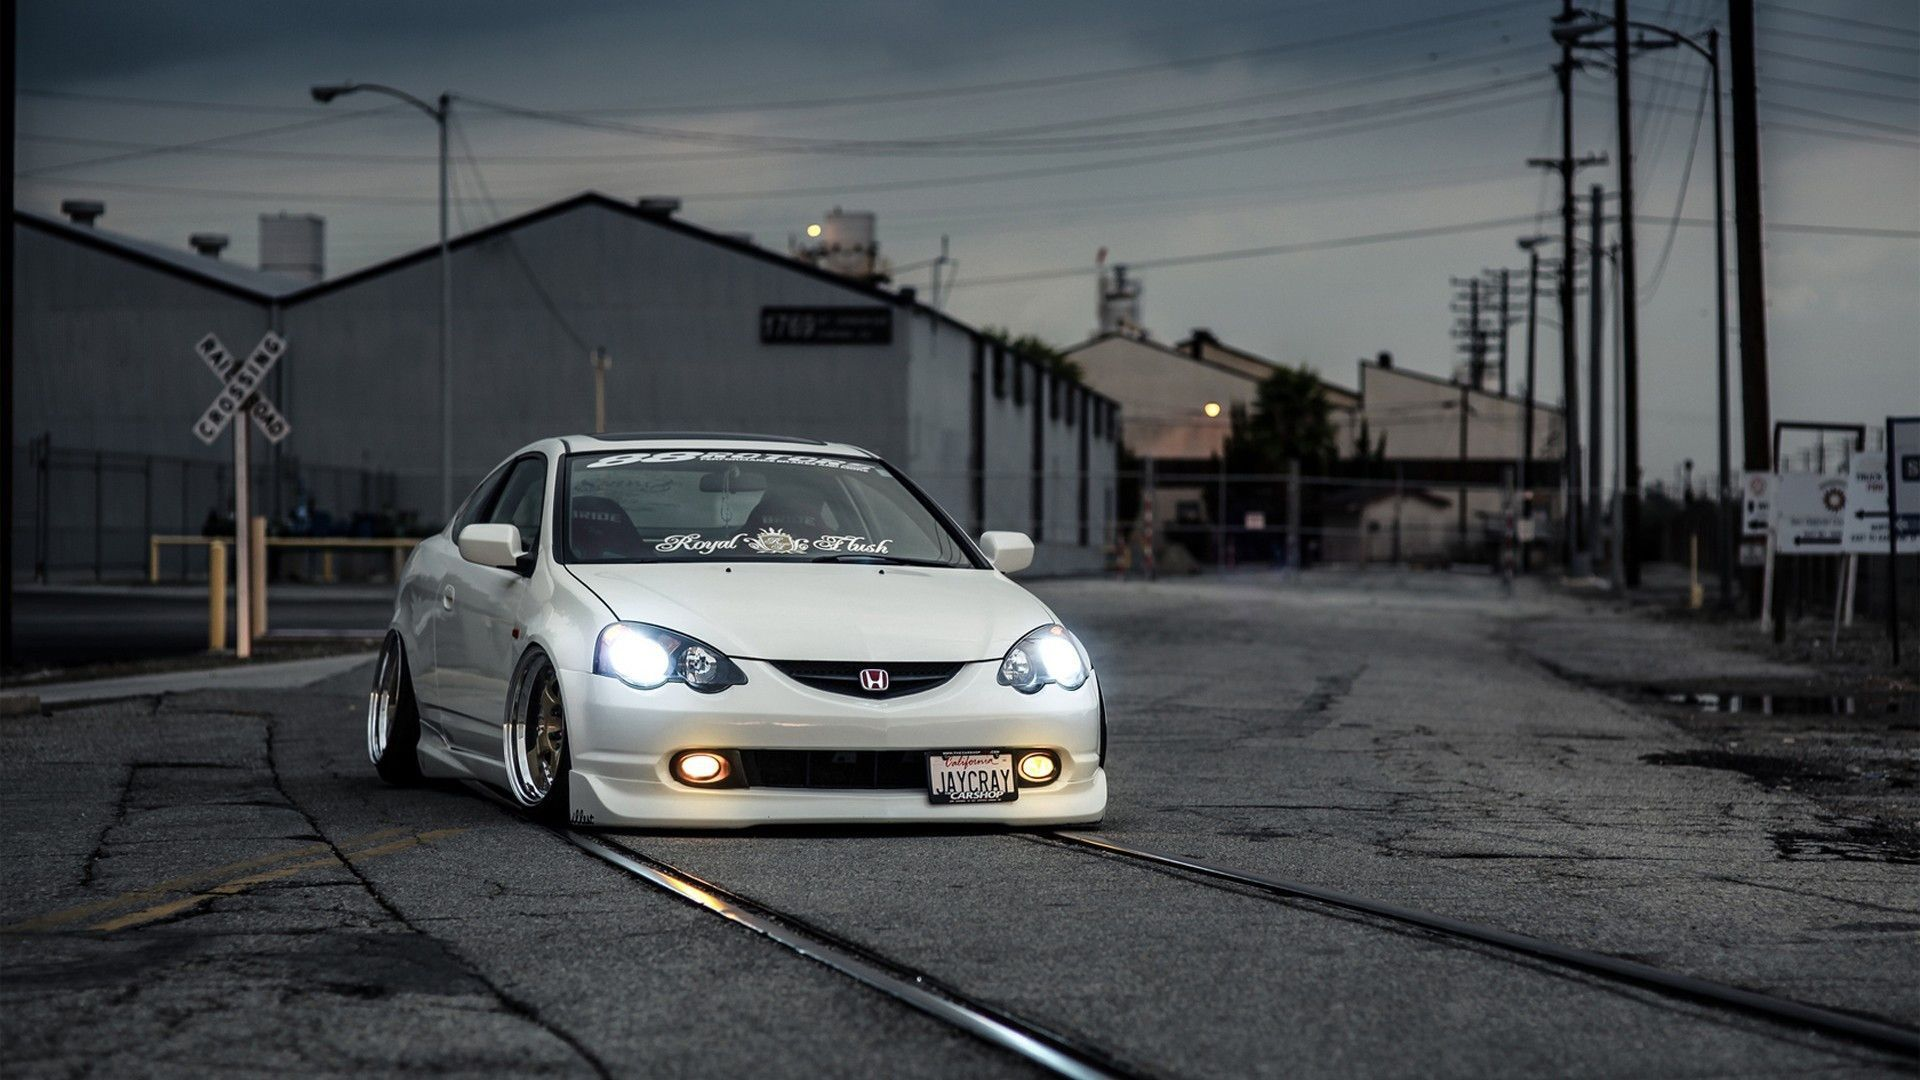 Acura RSX Wallpapers Wallpaper Cave Wallpaper